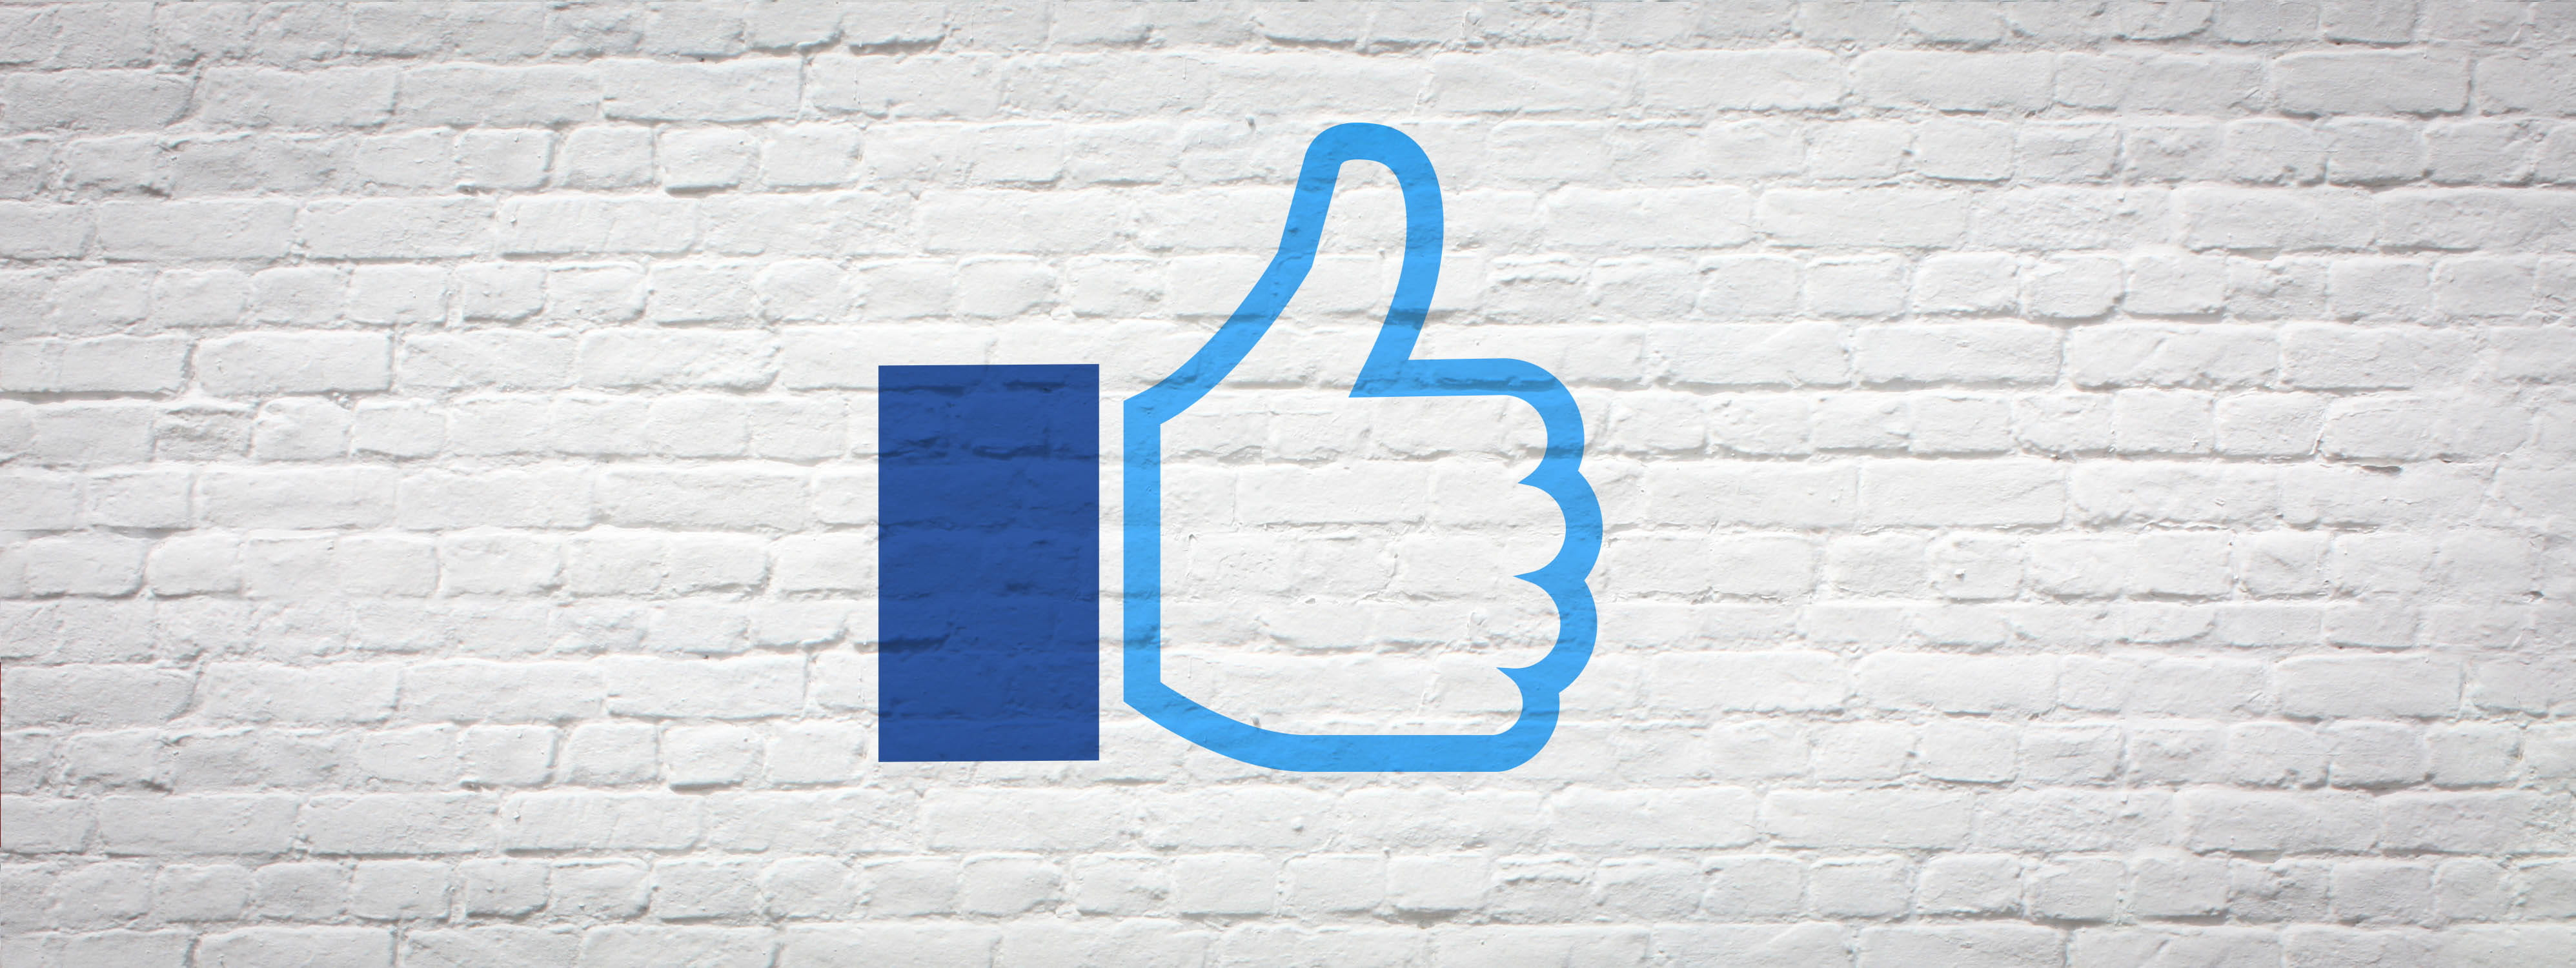 Using Facebook Attribution to uncover full funnel value of the Facebook mix